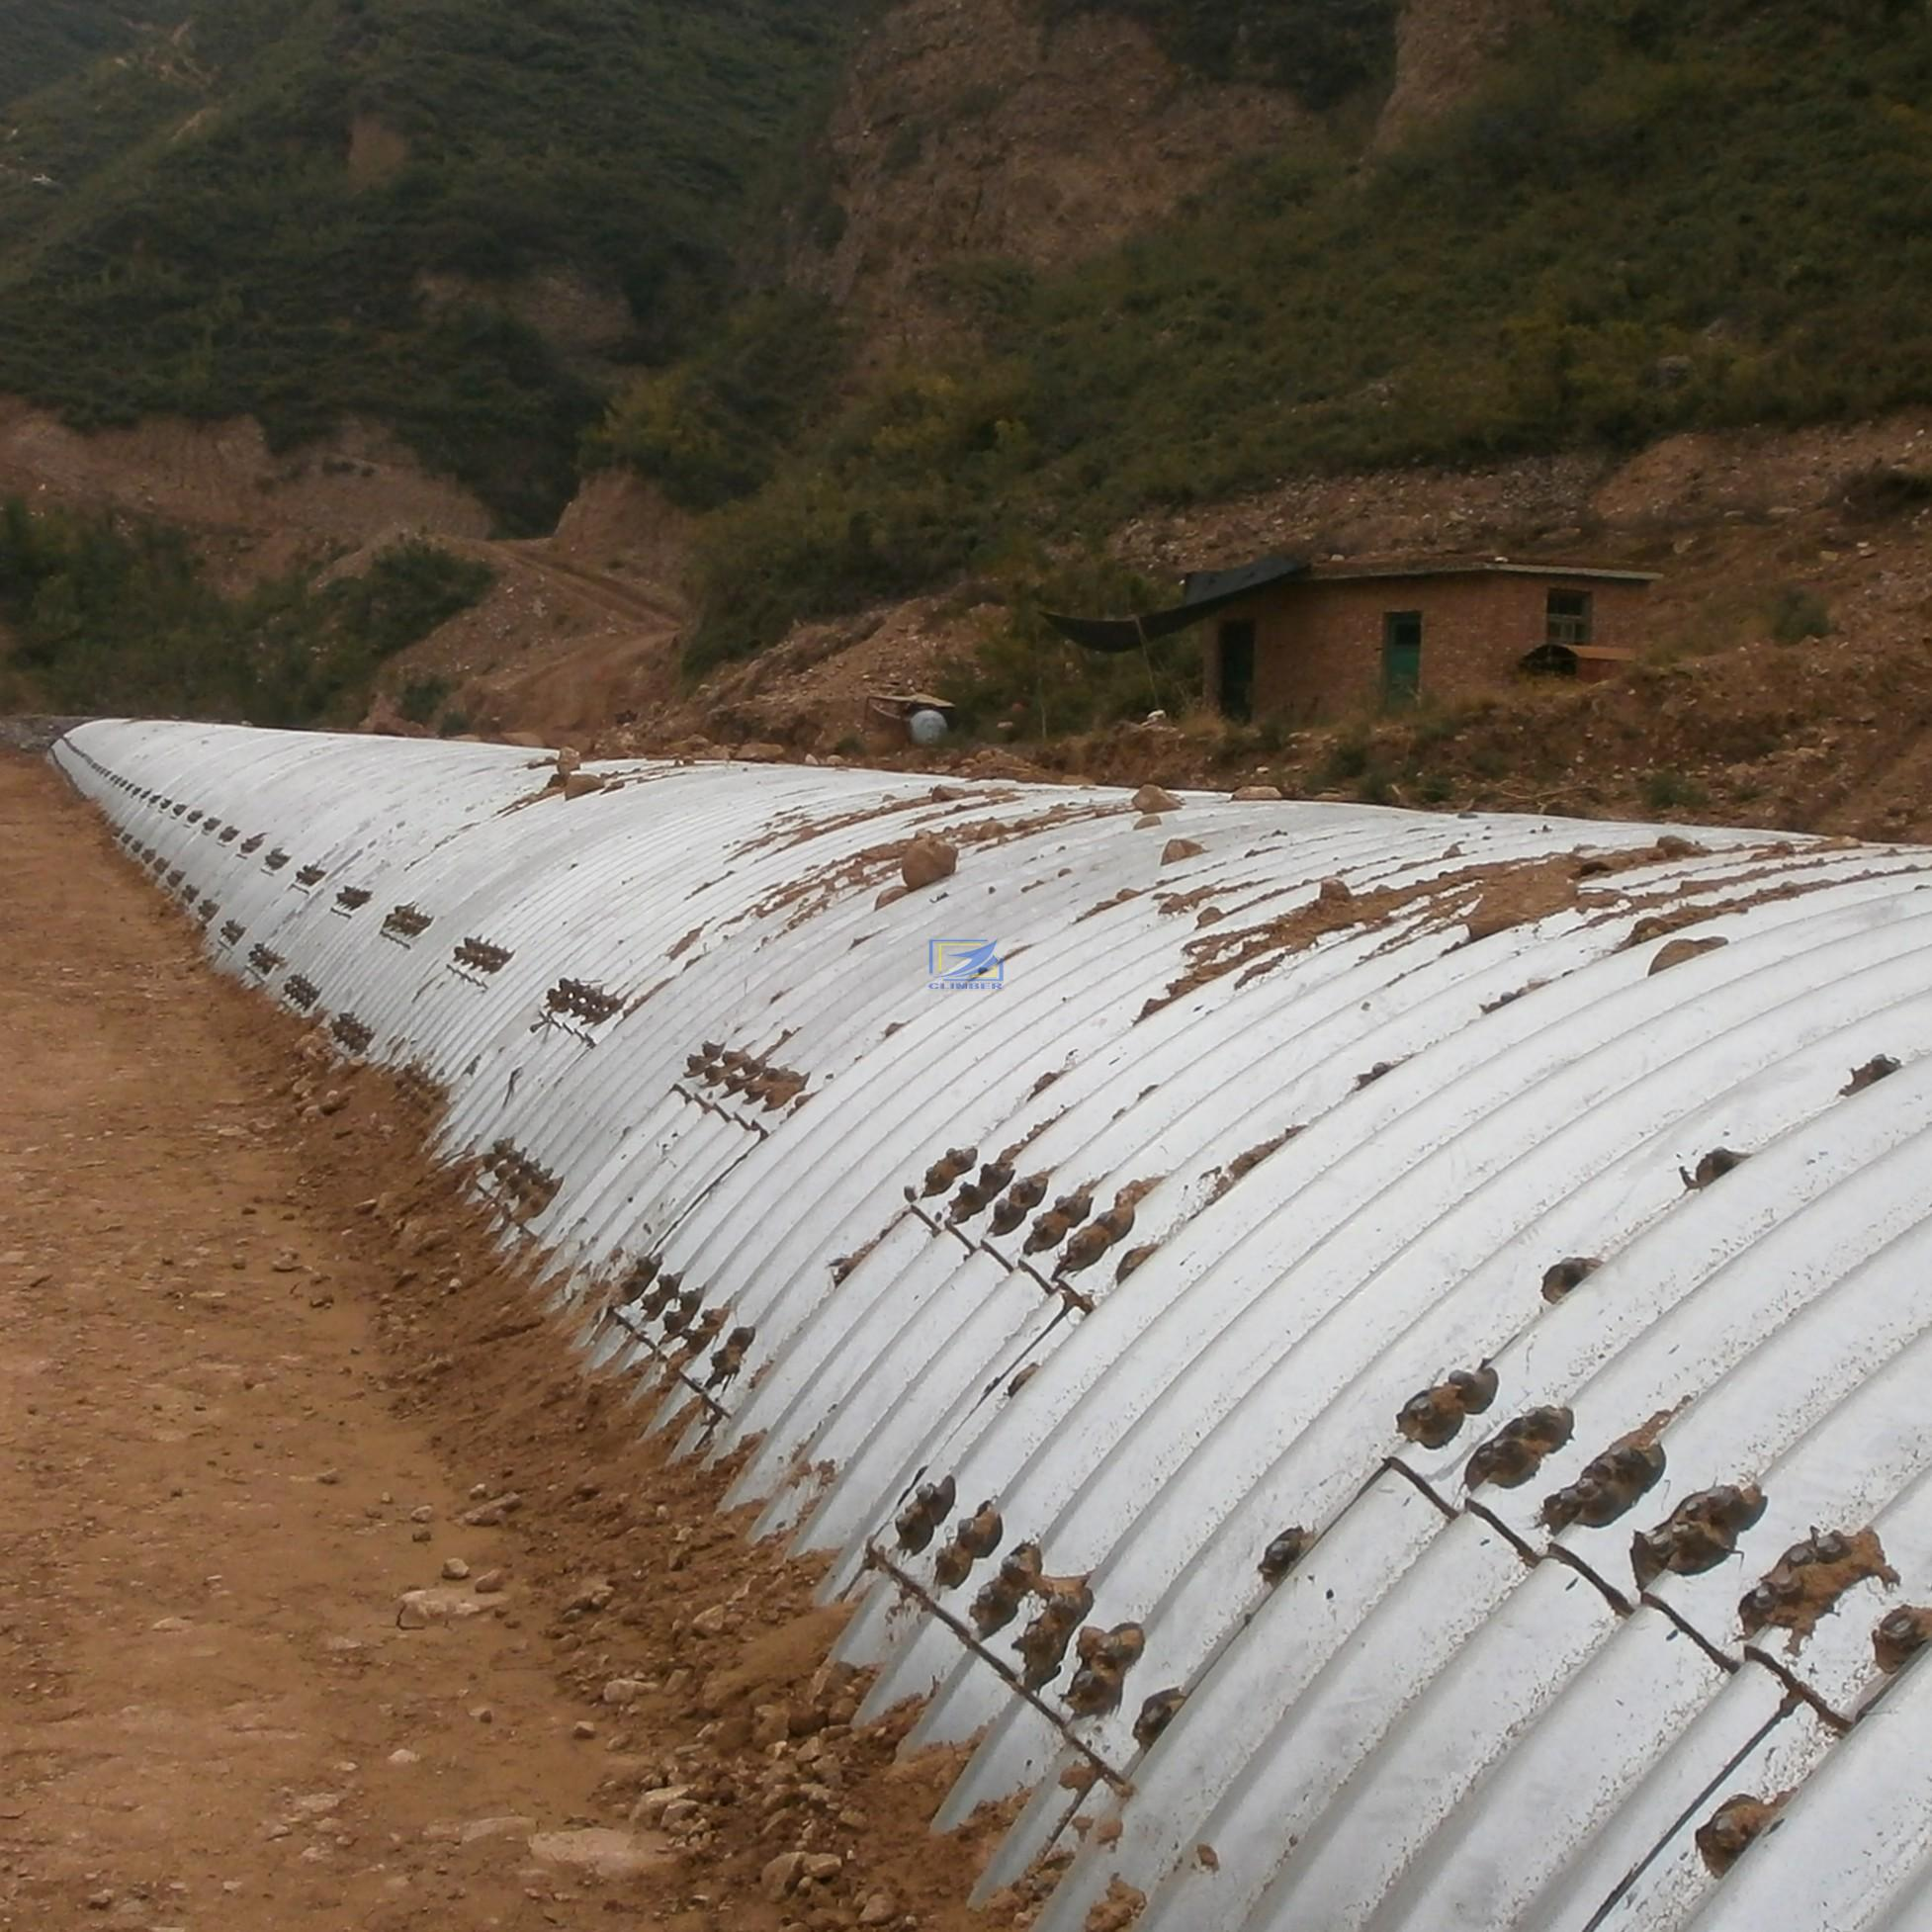 Big diameter corrugated metal culvert pipe assembled by structural plate